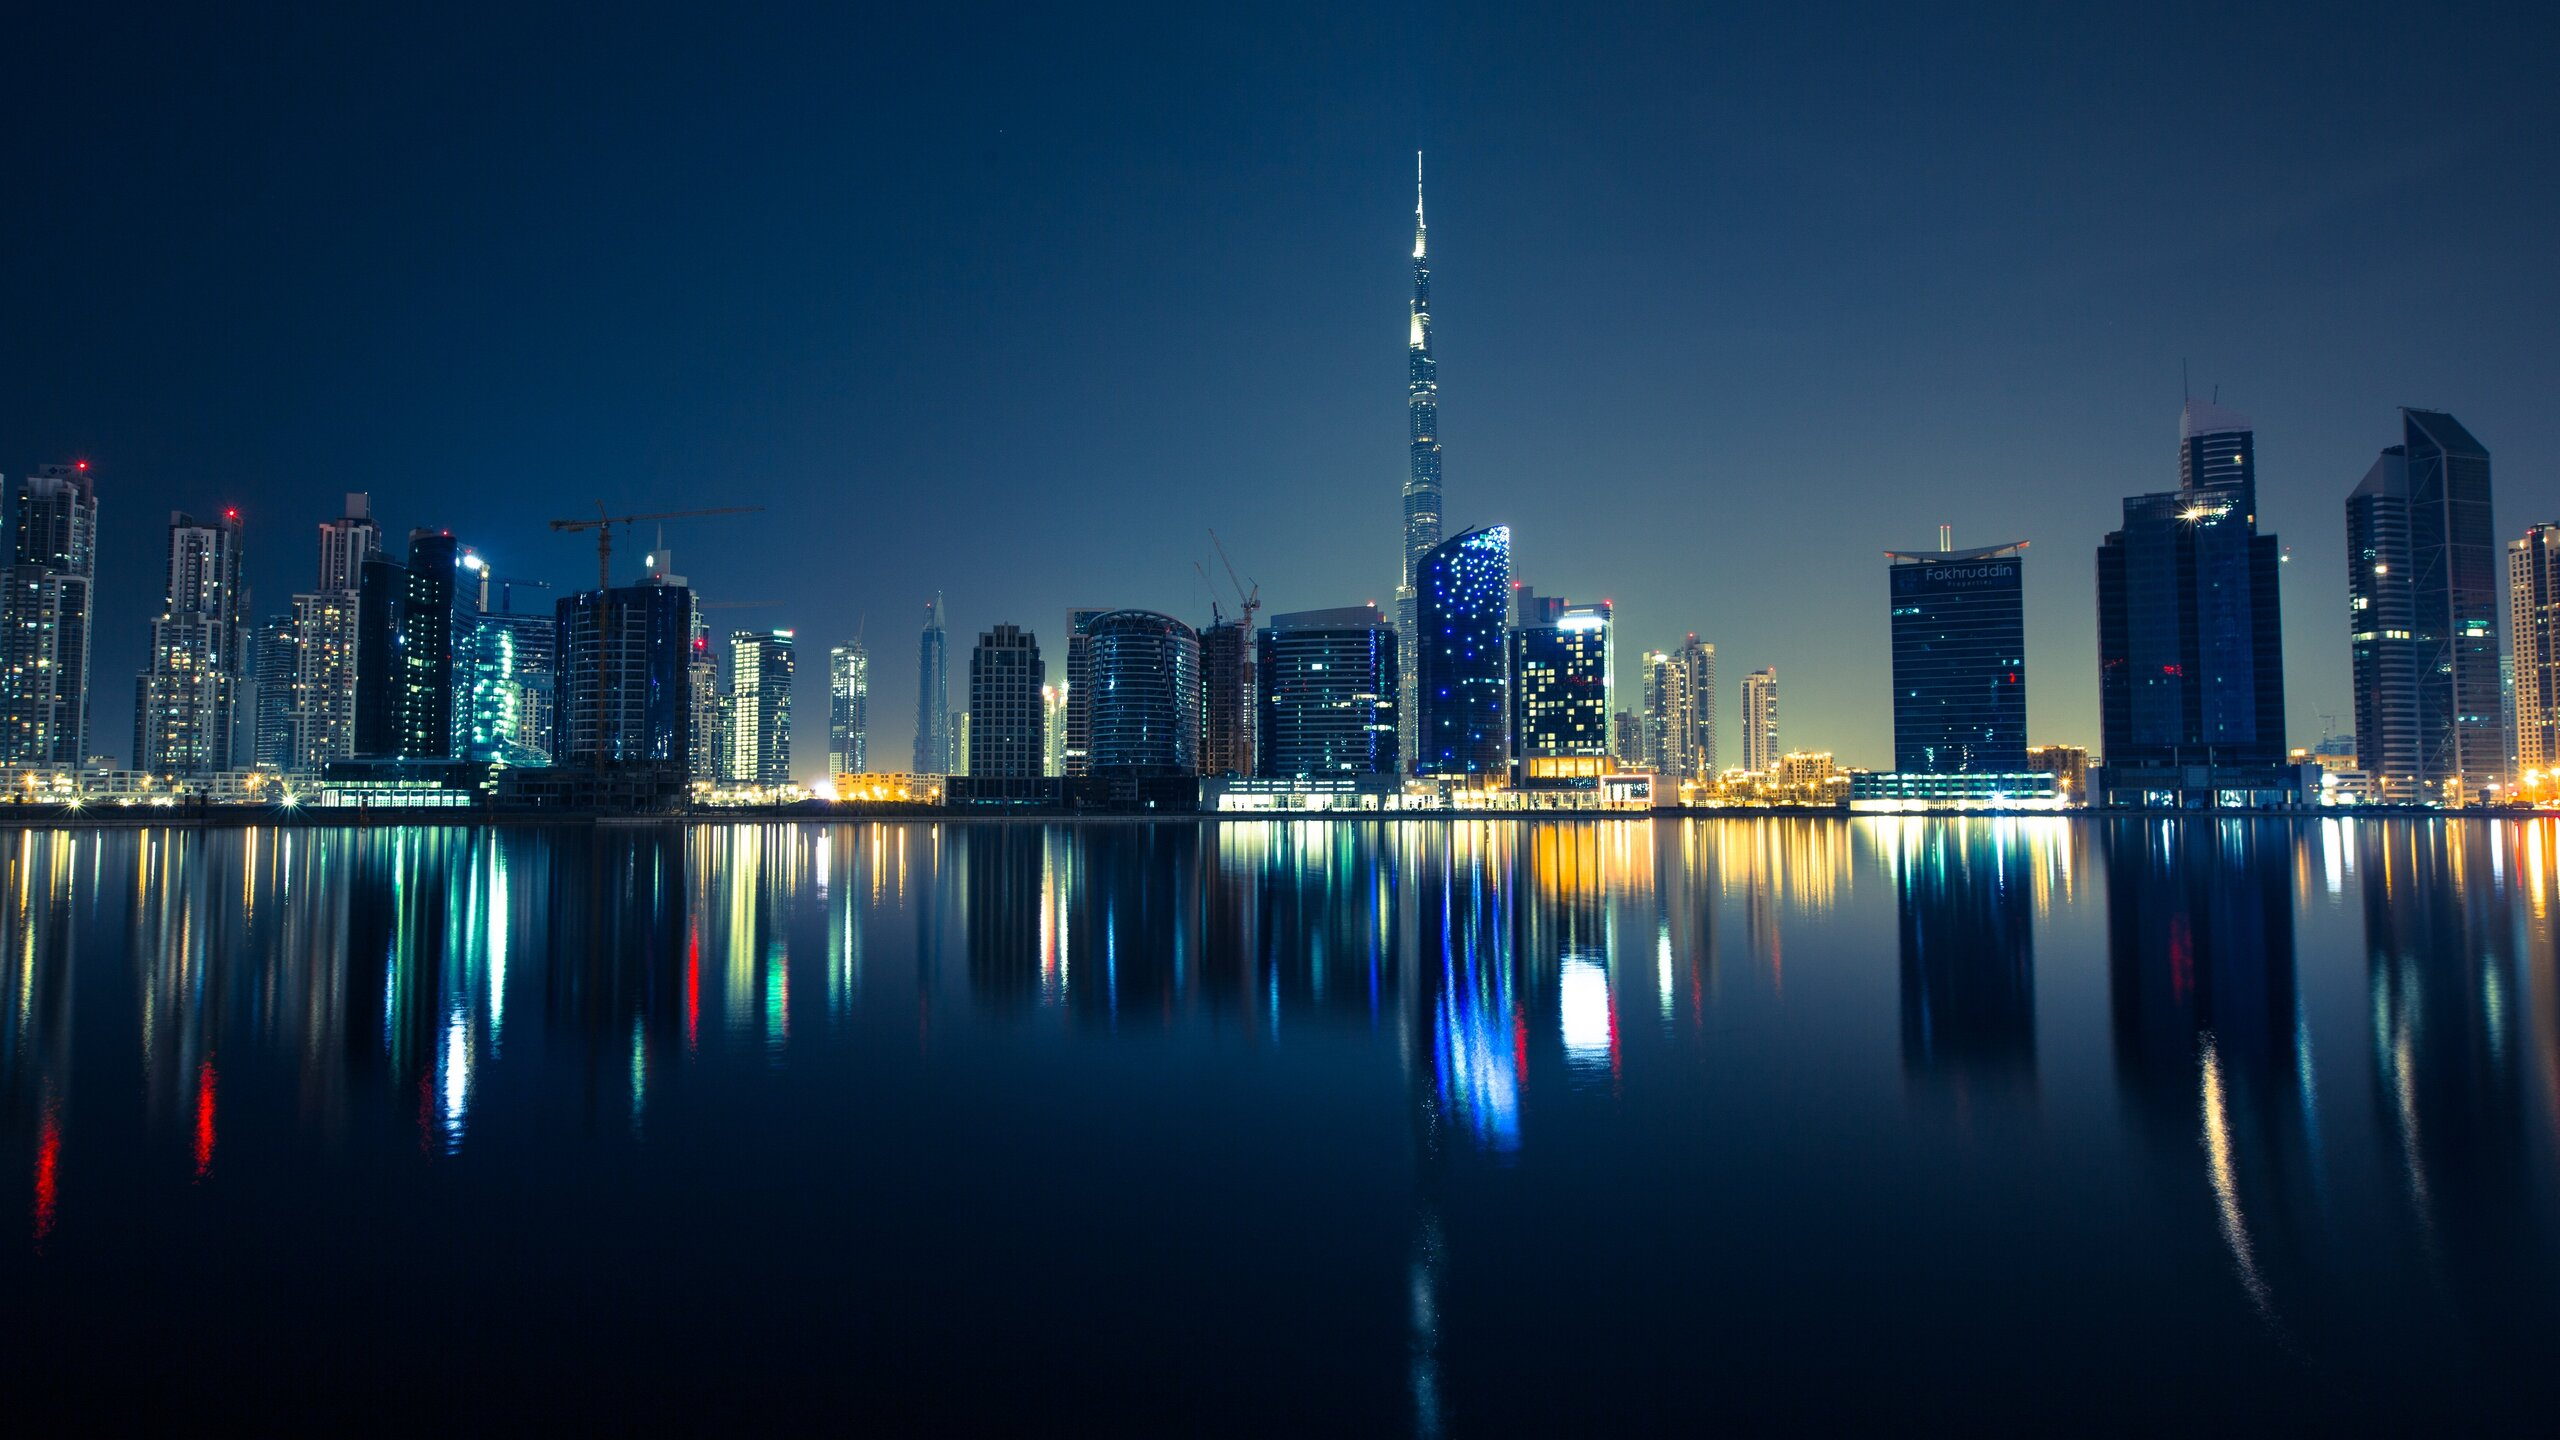 dubai-skyscrapers-emirates-uae-night-5k-r3.jpg